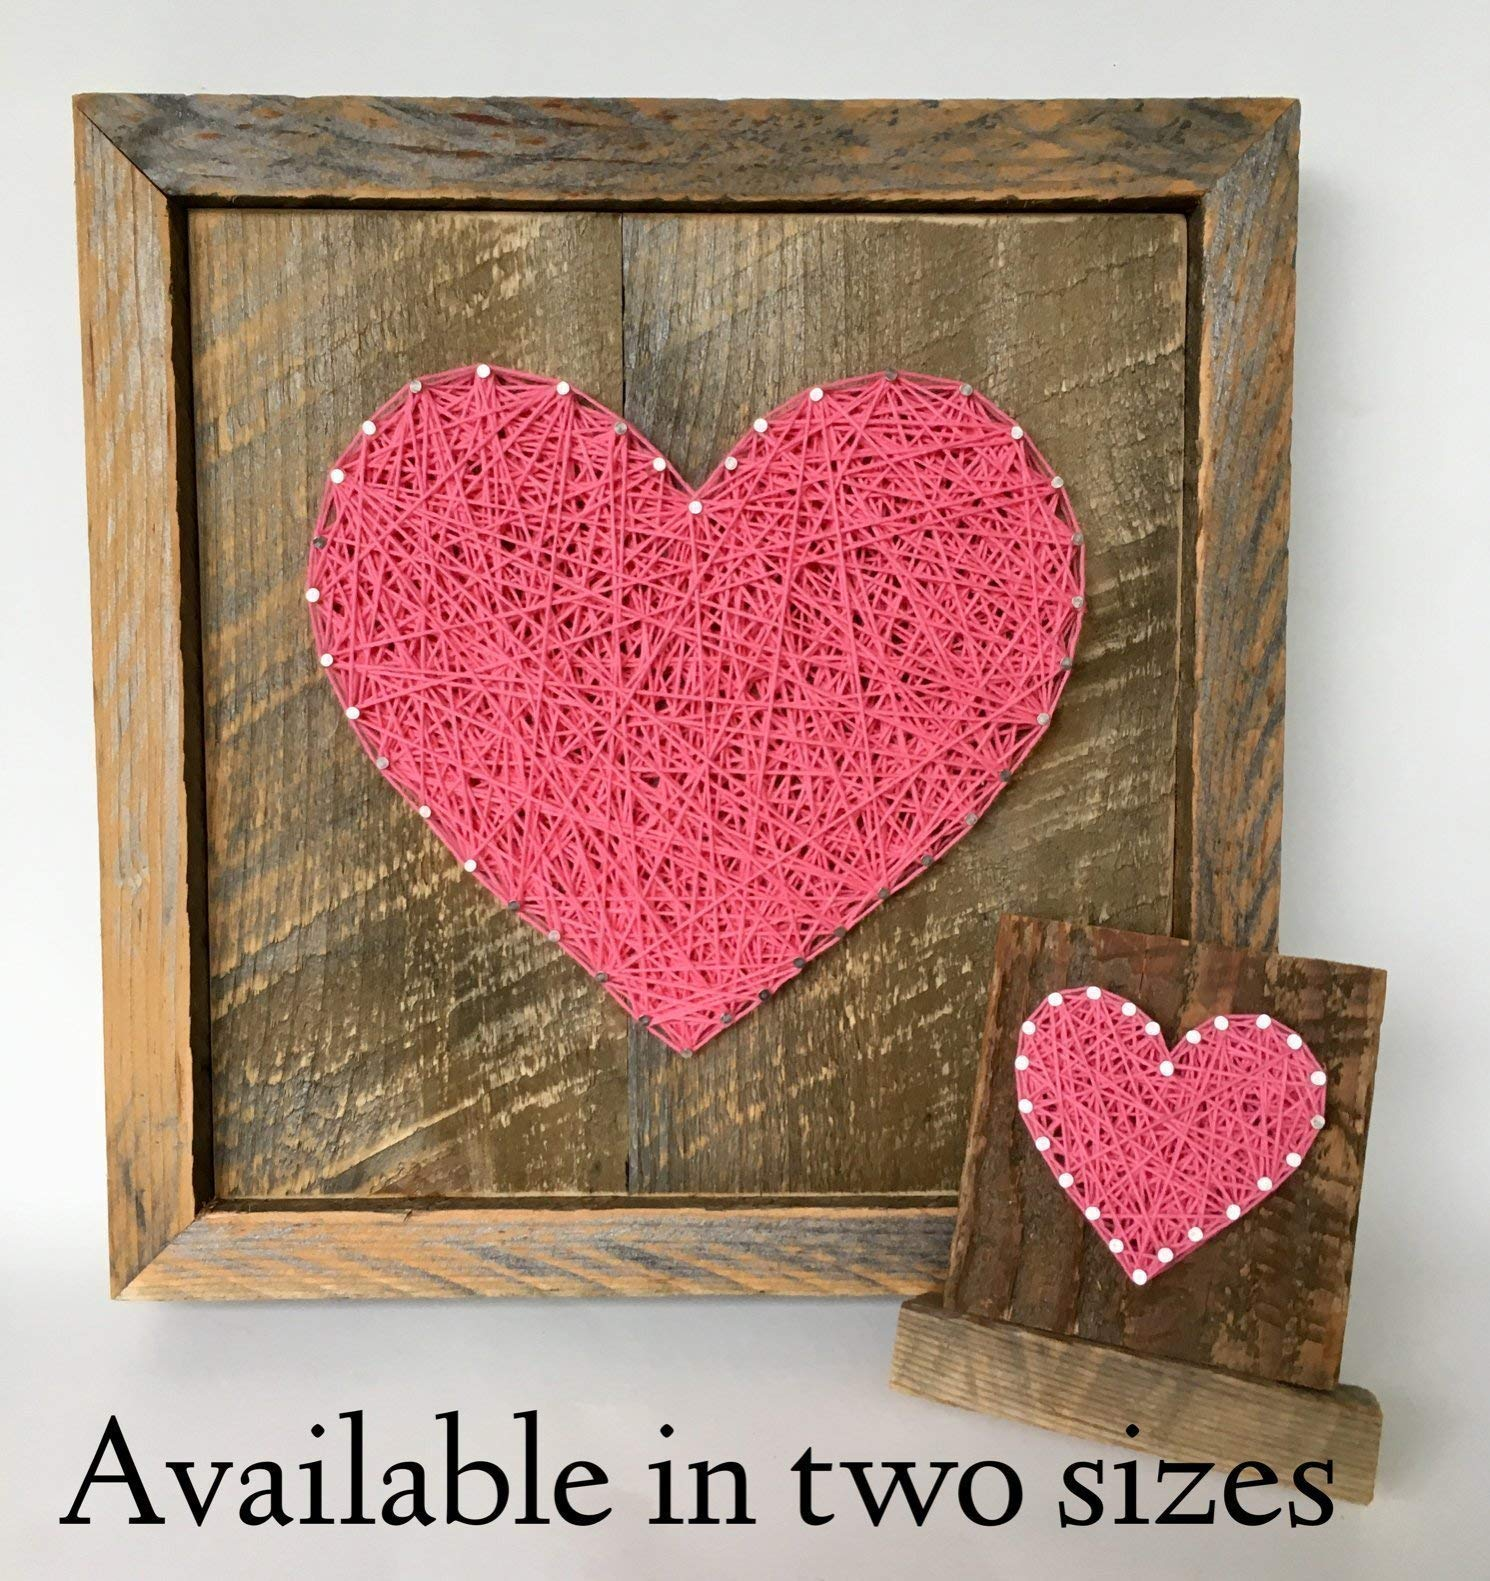 Large framed pink string art heart reclaimed wood sign. A unique gift for Weddings, Anniversaries, Birthdays, new baby girl. housewarming and just because gift.